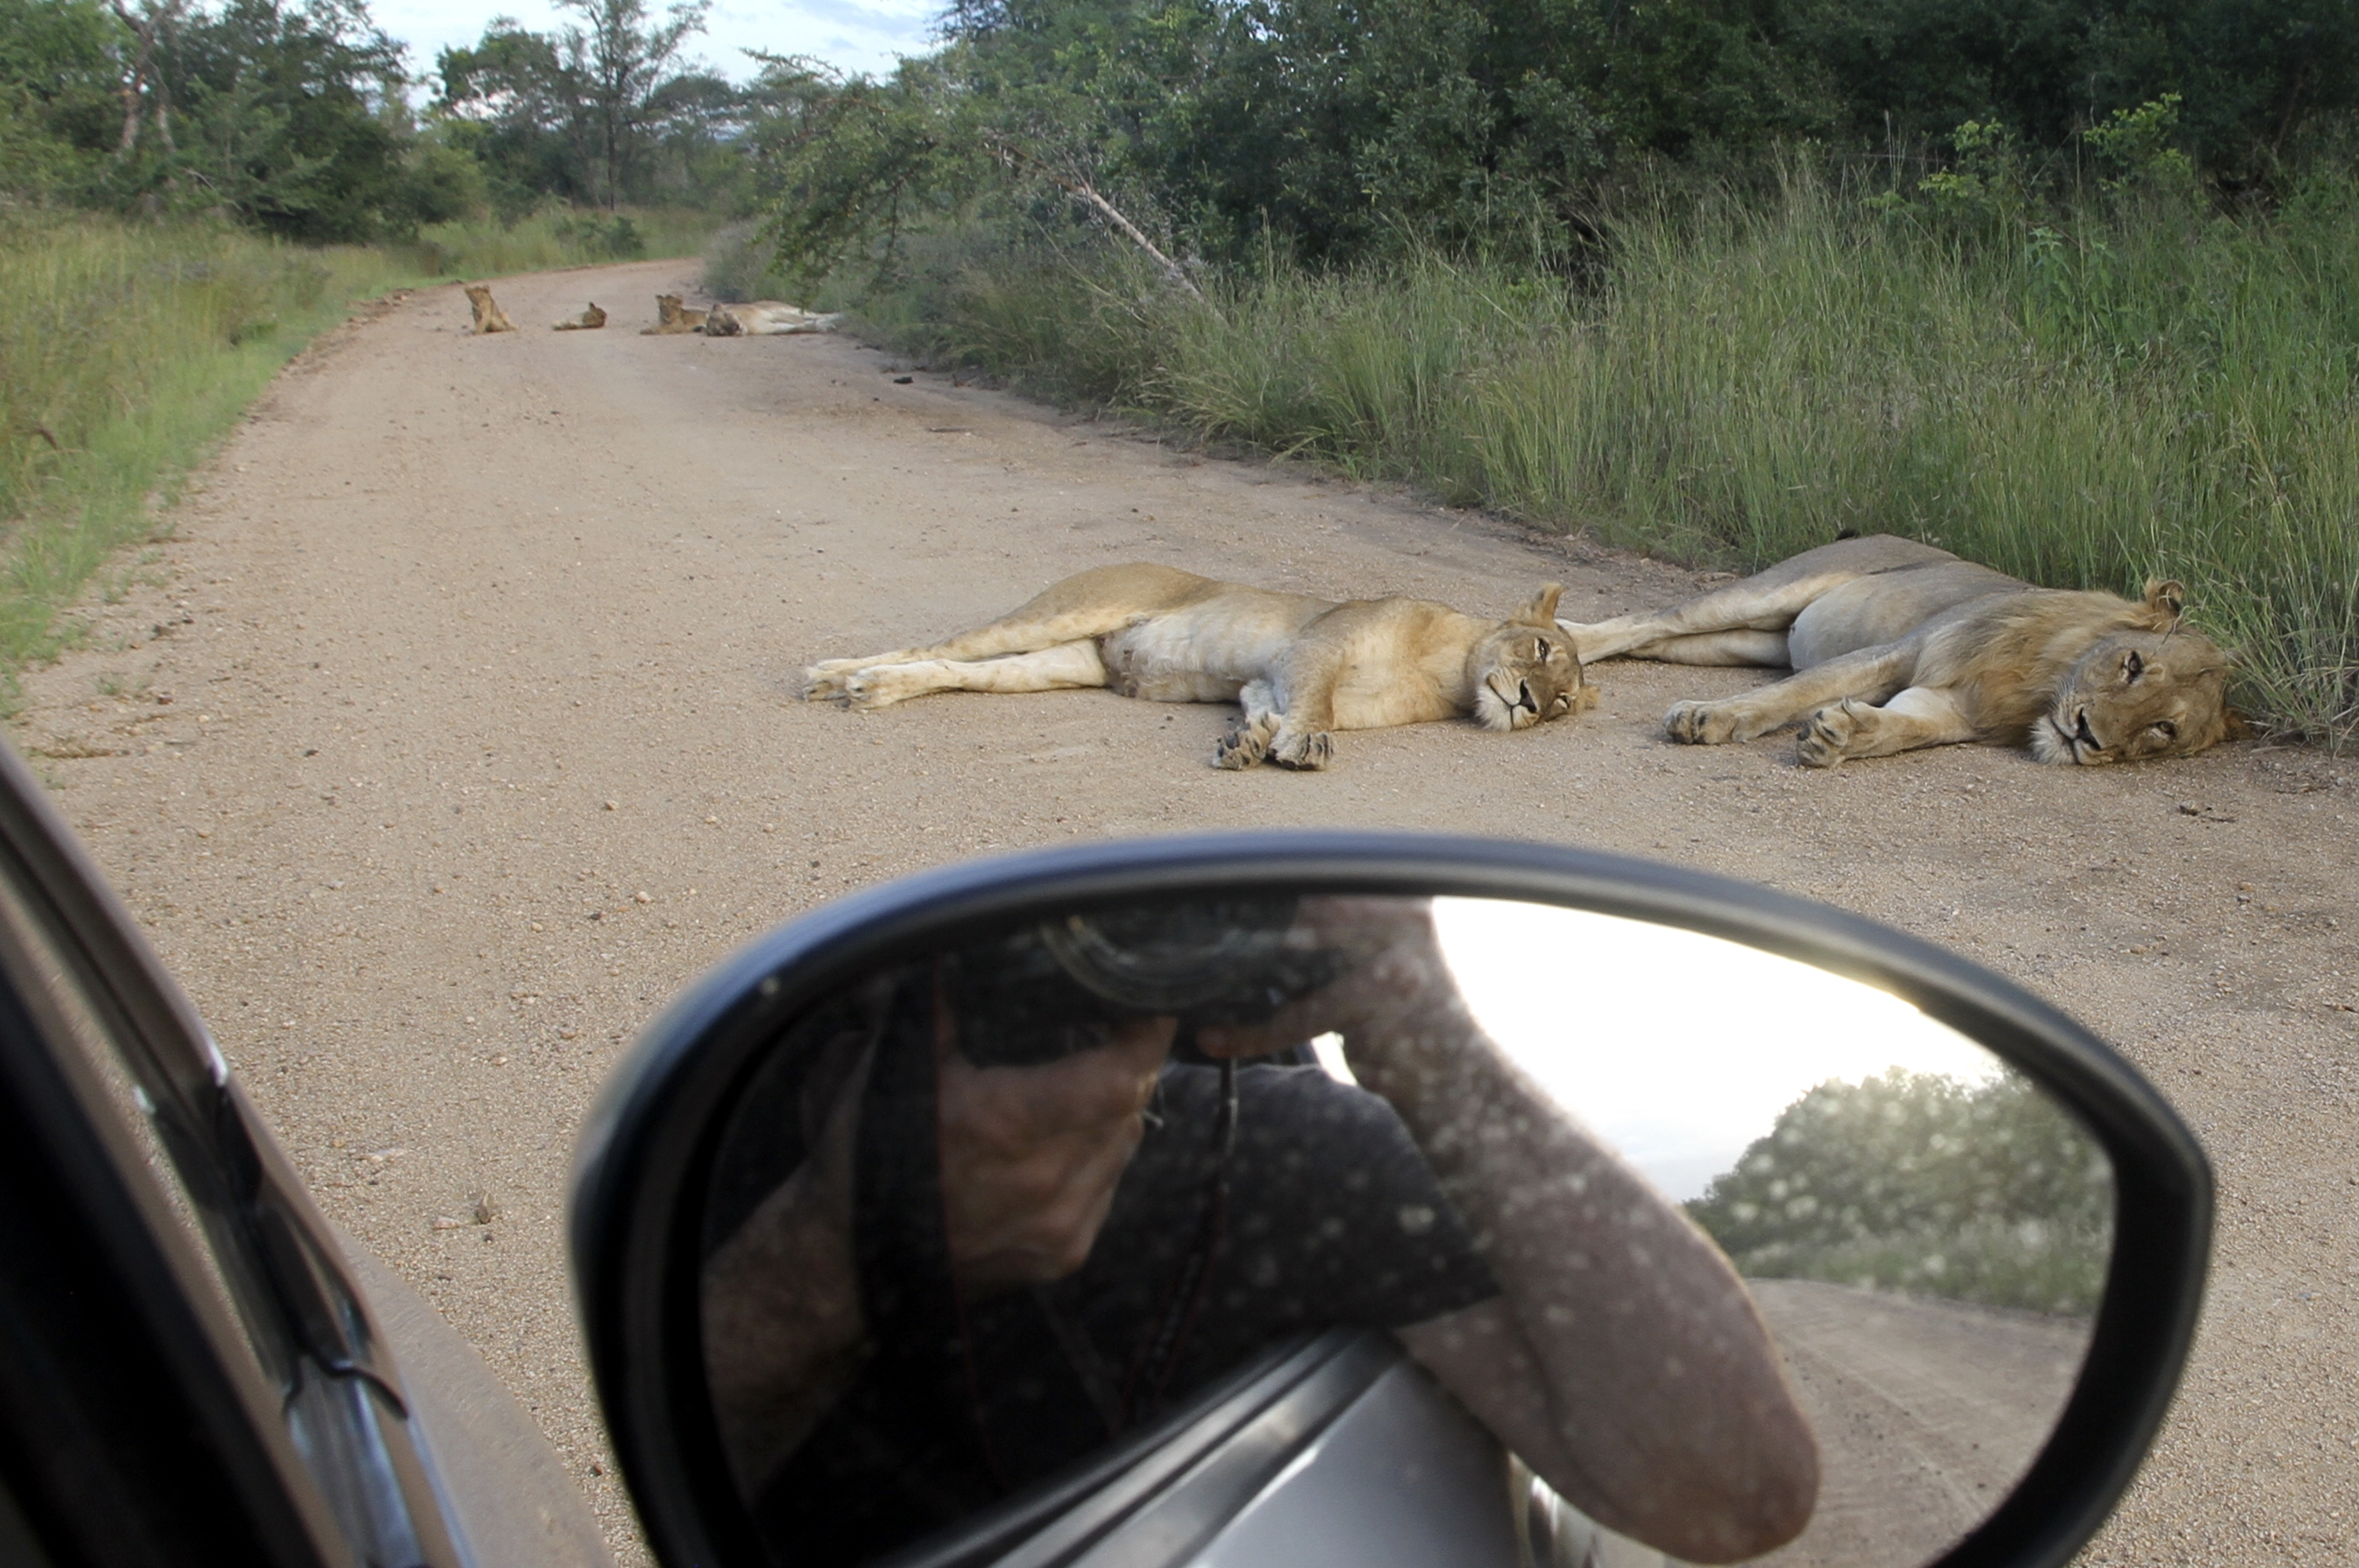 Lounging lions on a road at Kruger National Park, South Africa, Feb. 14, 2014. By driving yourself, cooking for yourself and camping, you can do Kruger for around $100 per couple per day, including everything but airfare. (Seth Kugel/The New York Times) — PHOTO MOVED IN ADVANCE AND NOT FOR USE – ONLINE OR IN PRINT – BEFORE MARCH 30, 2014.